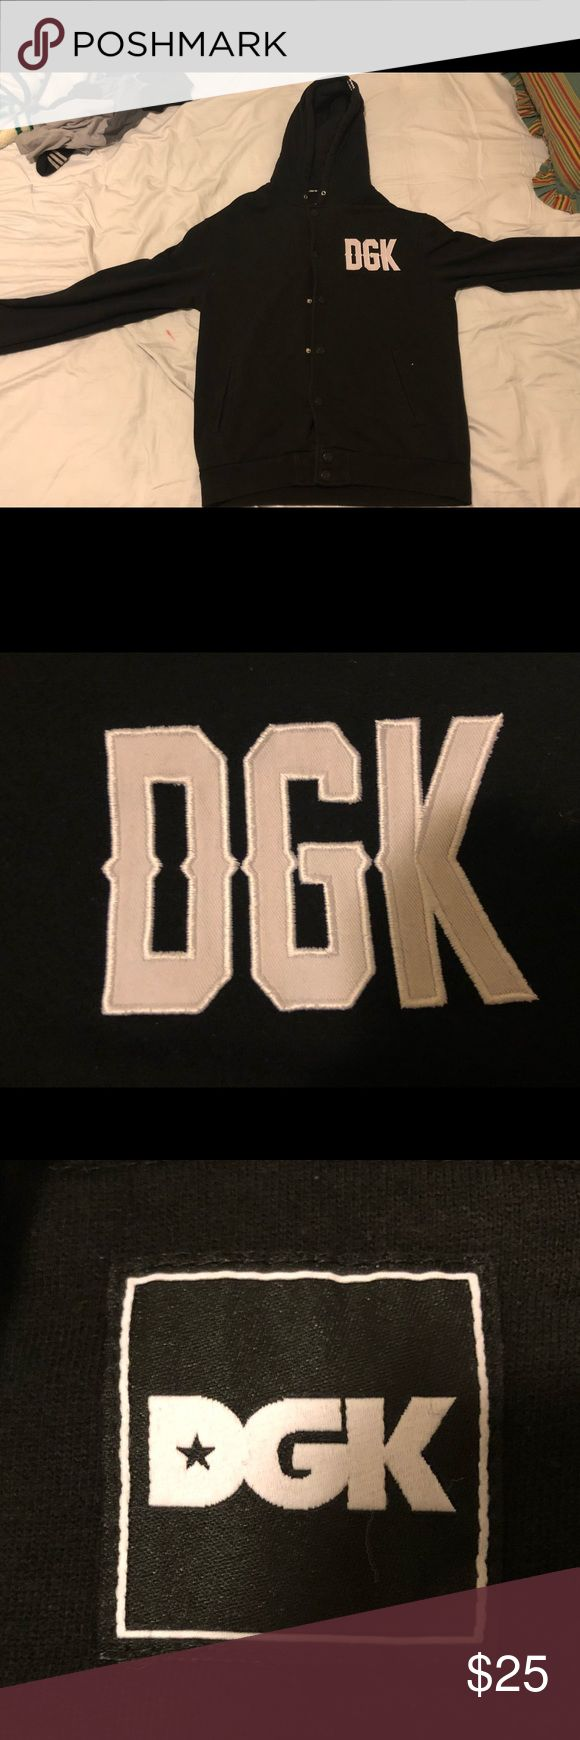 DGK Jacket Good condition. There are some signs of wear. Nice style jacket for anytime of cold seasons. Drawstrings not included DGK Shirts Sweatshirts & Hoodies